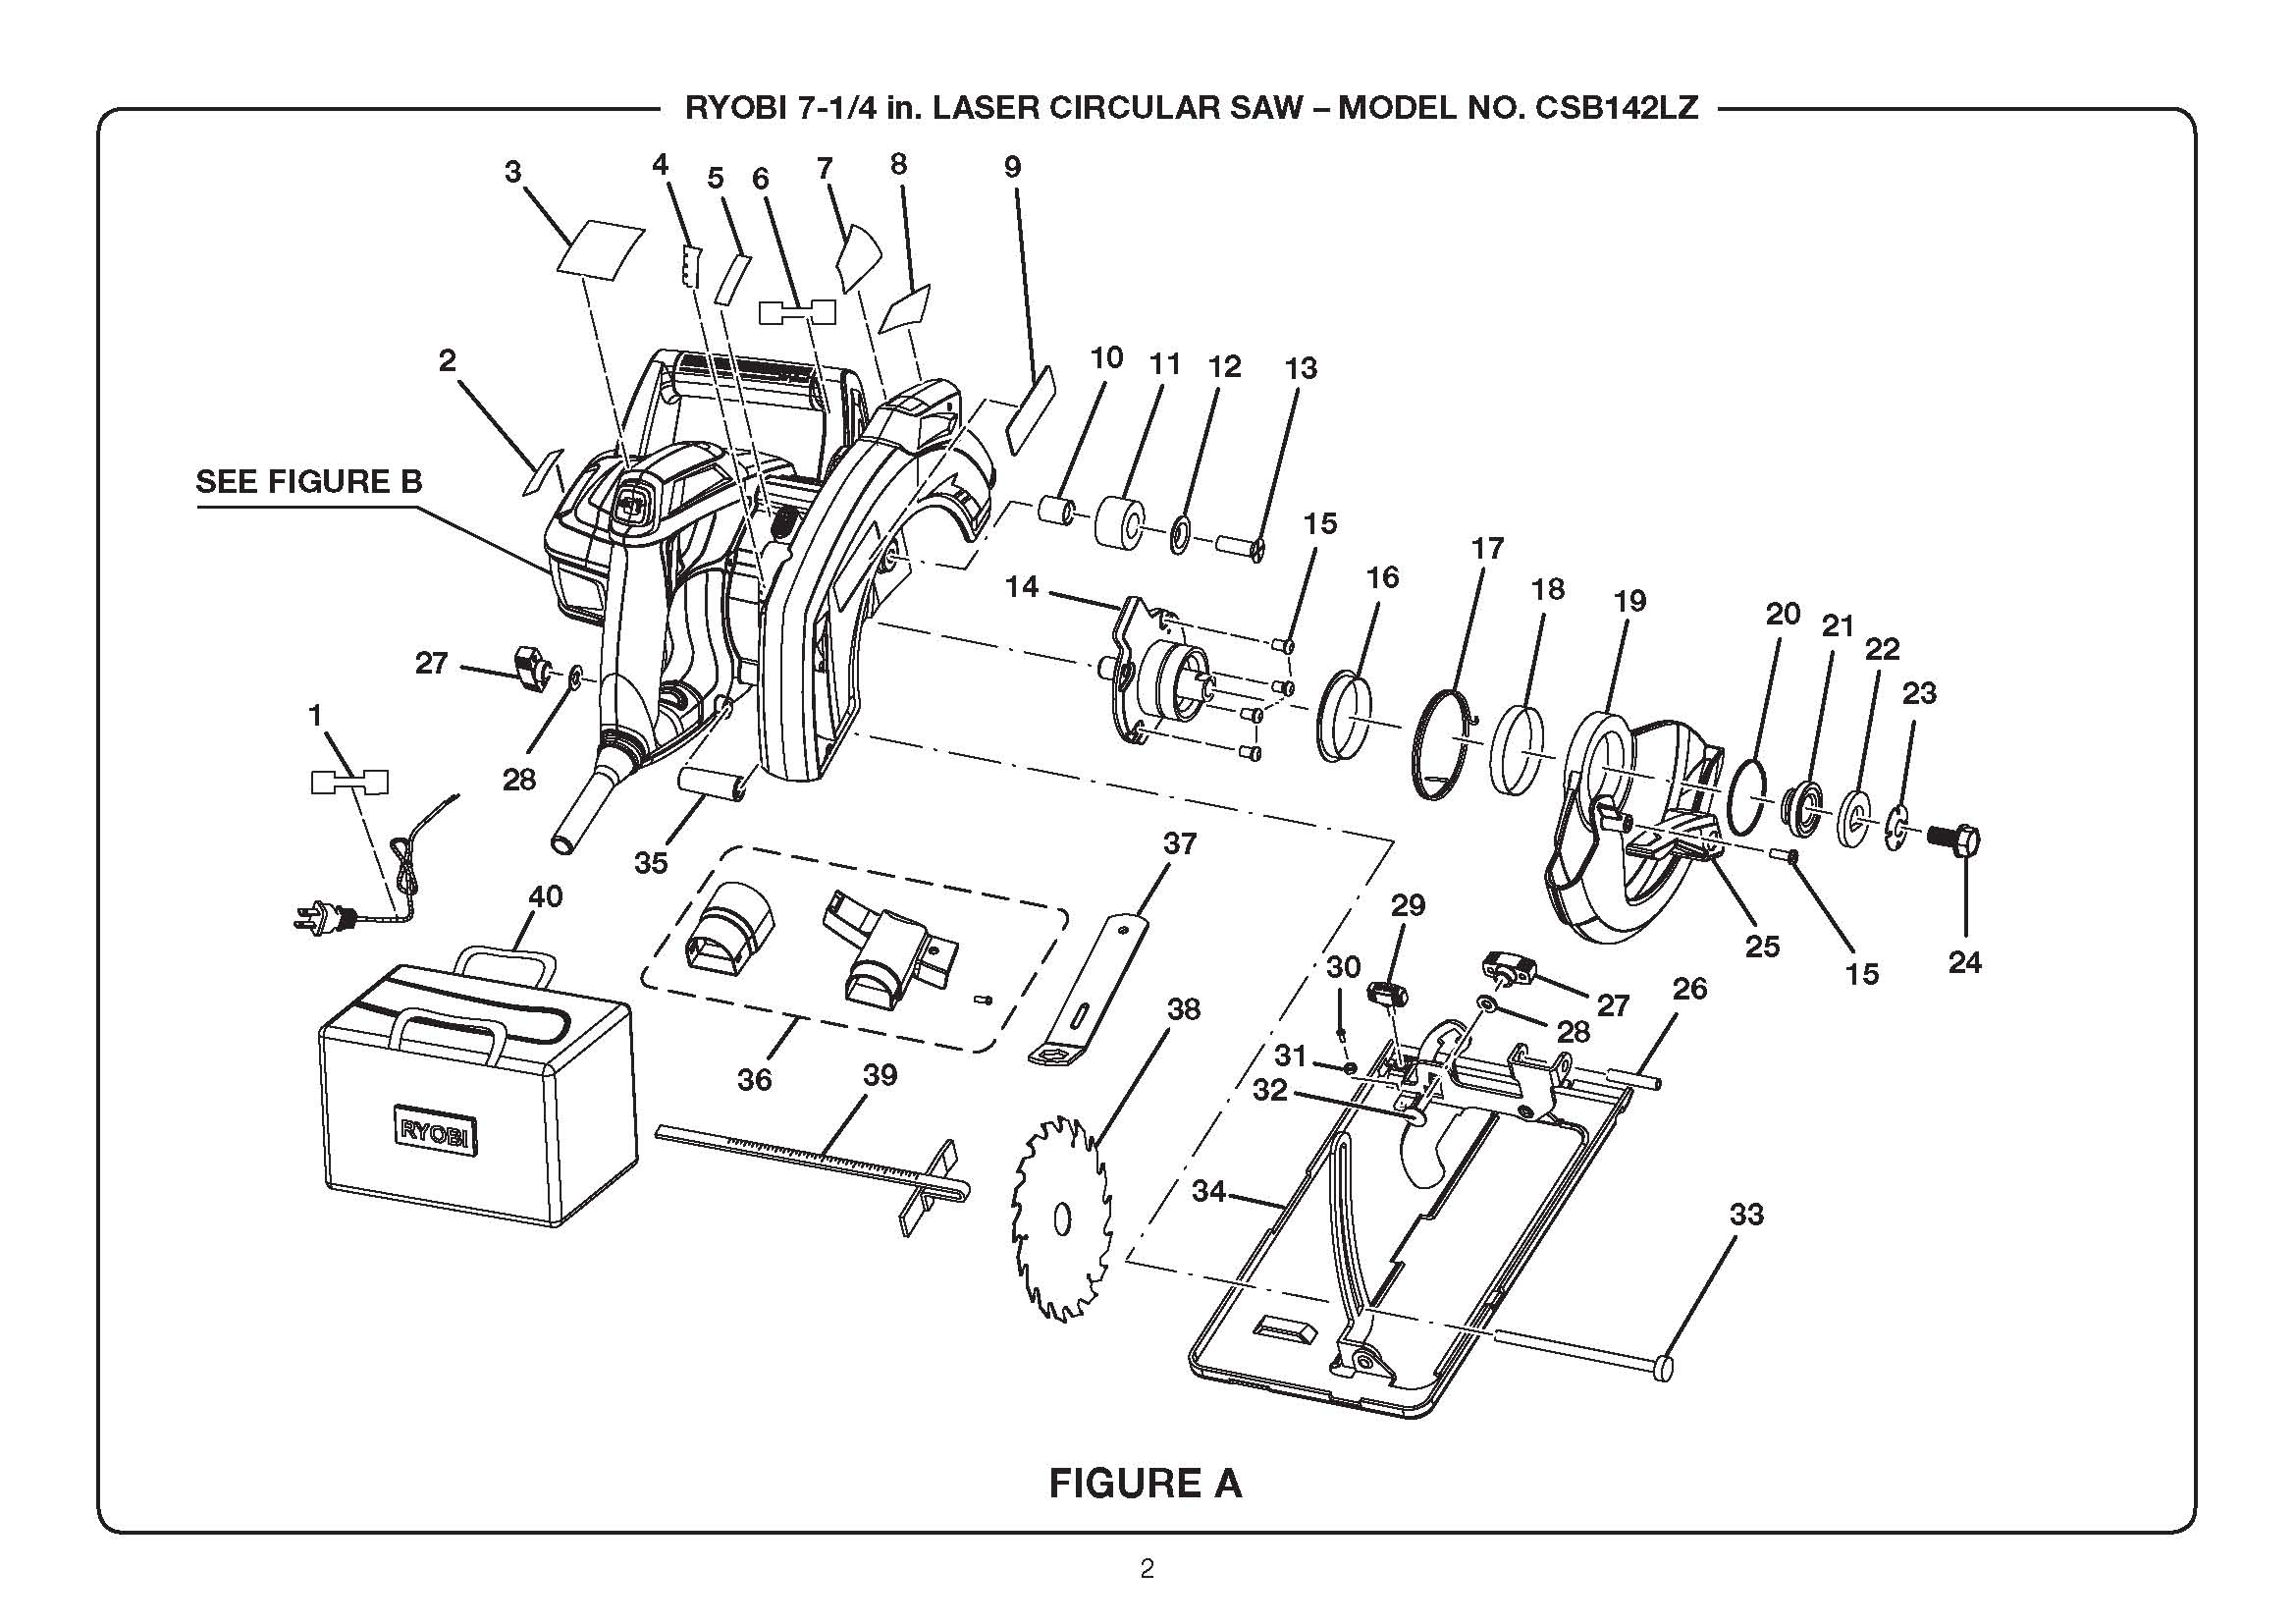 CSB142LZ - Circular Saw Parts schematic